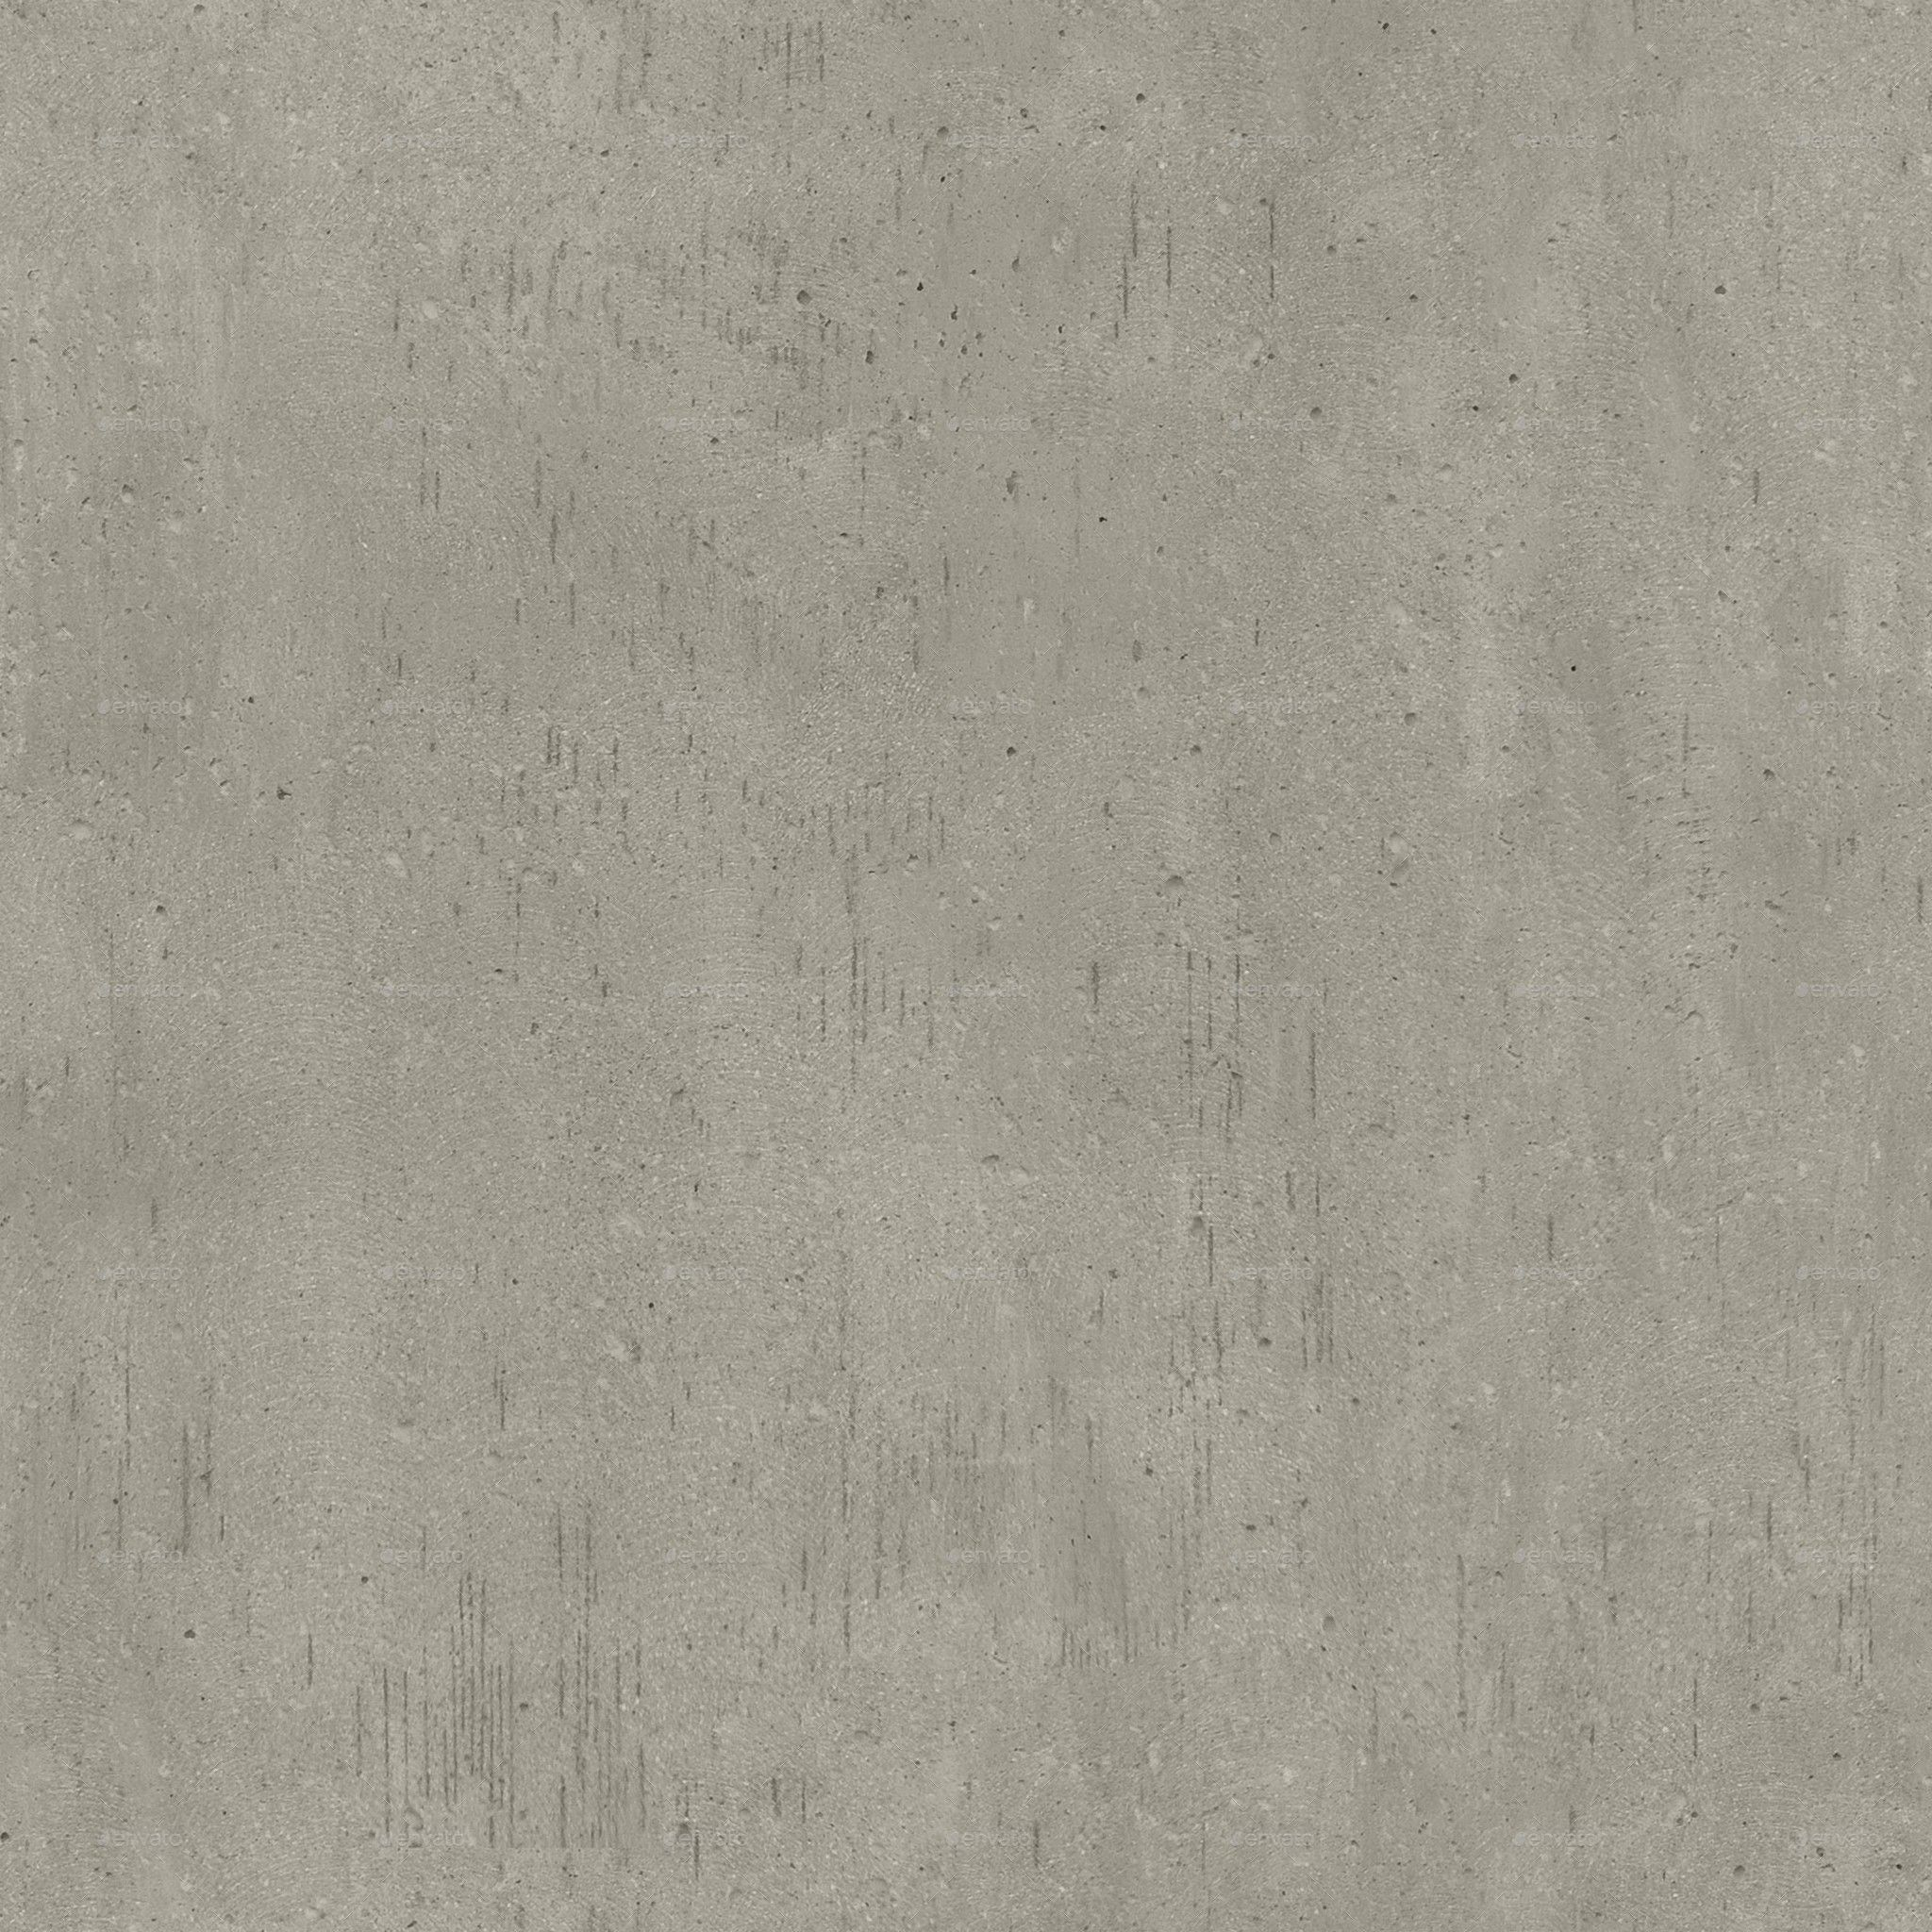 Concrete Seamless Texture Set Volume 1 Seamless